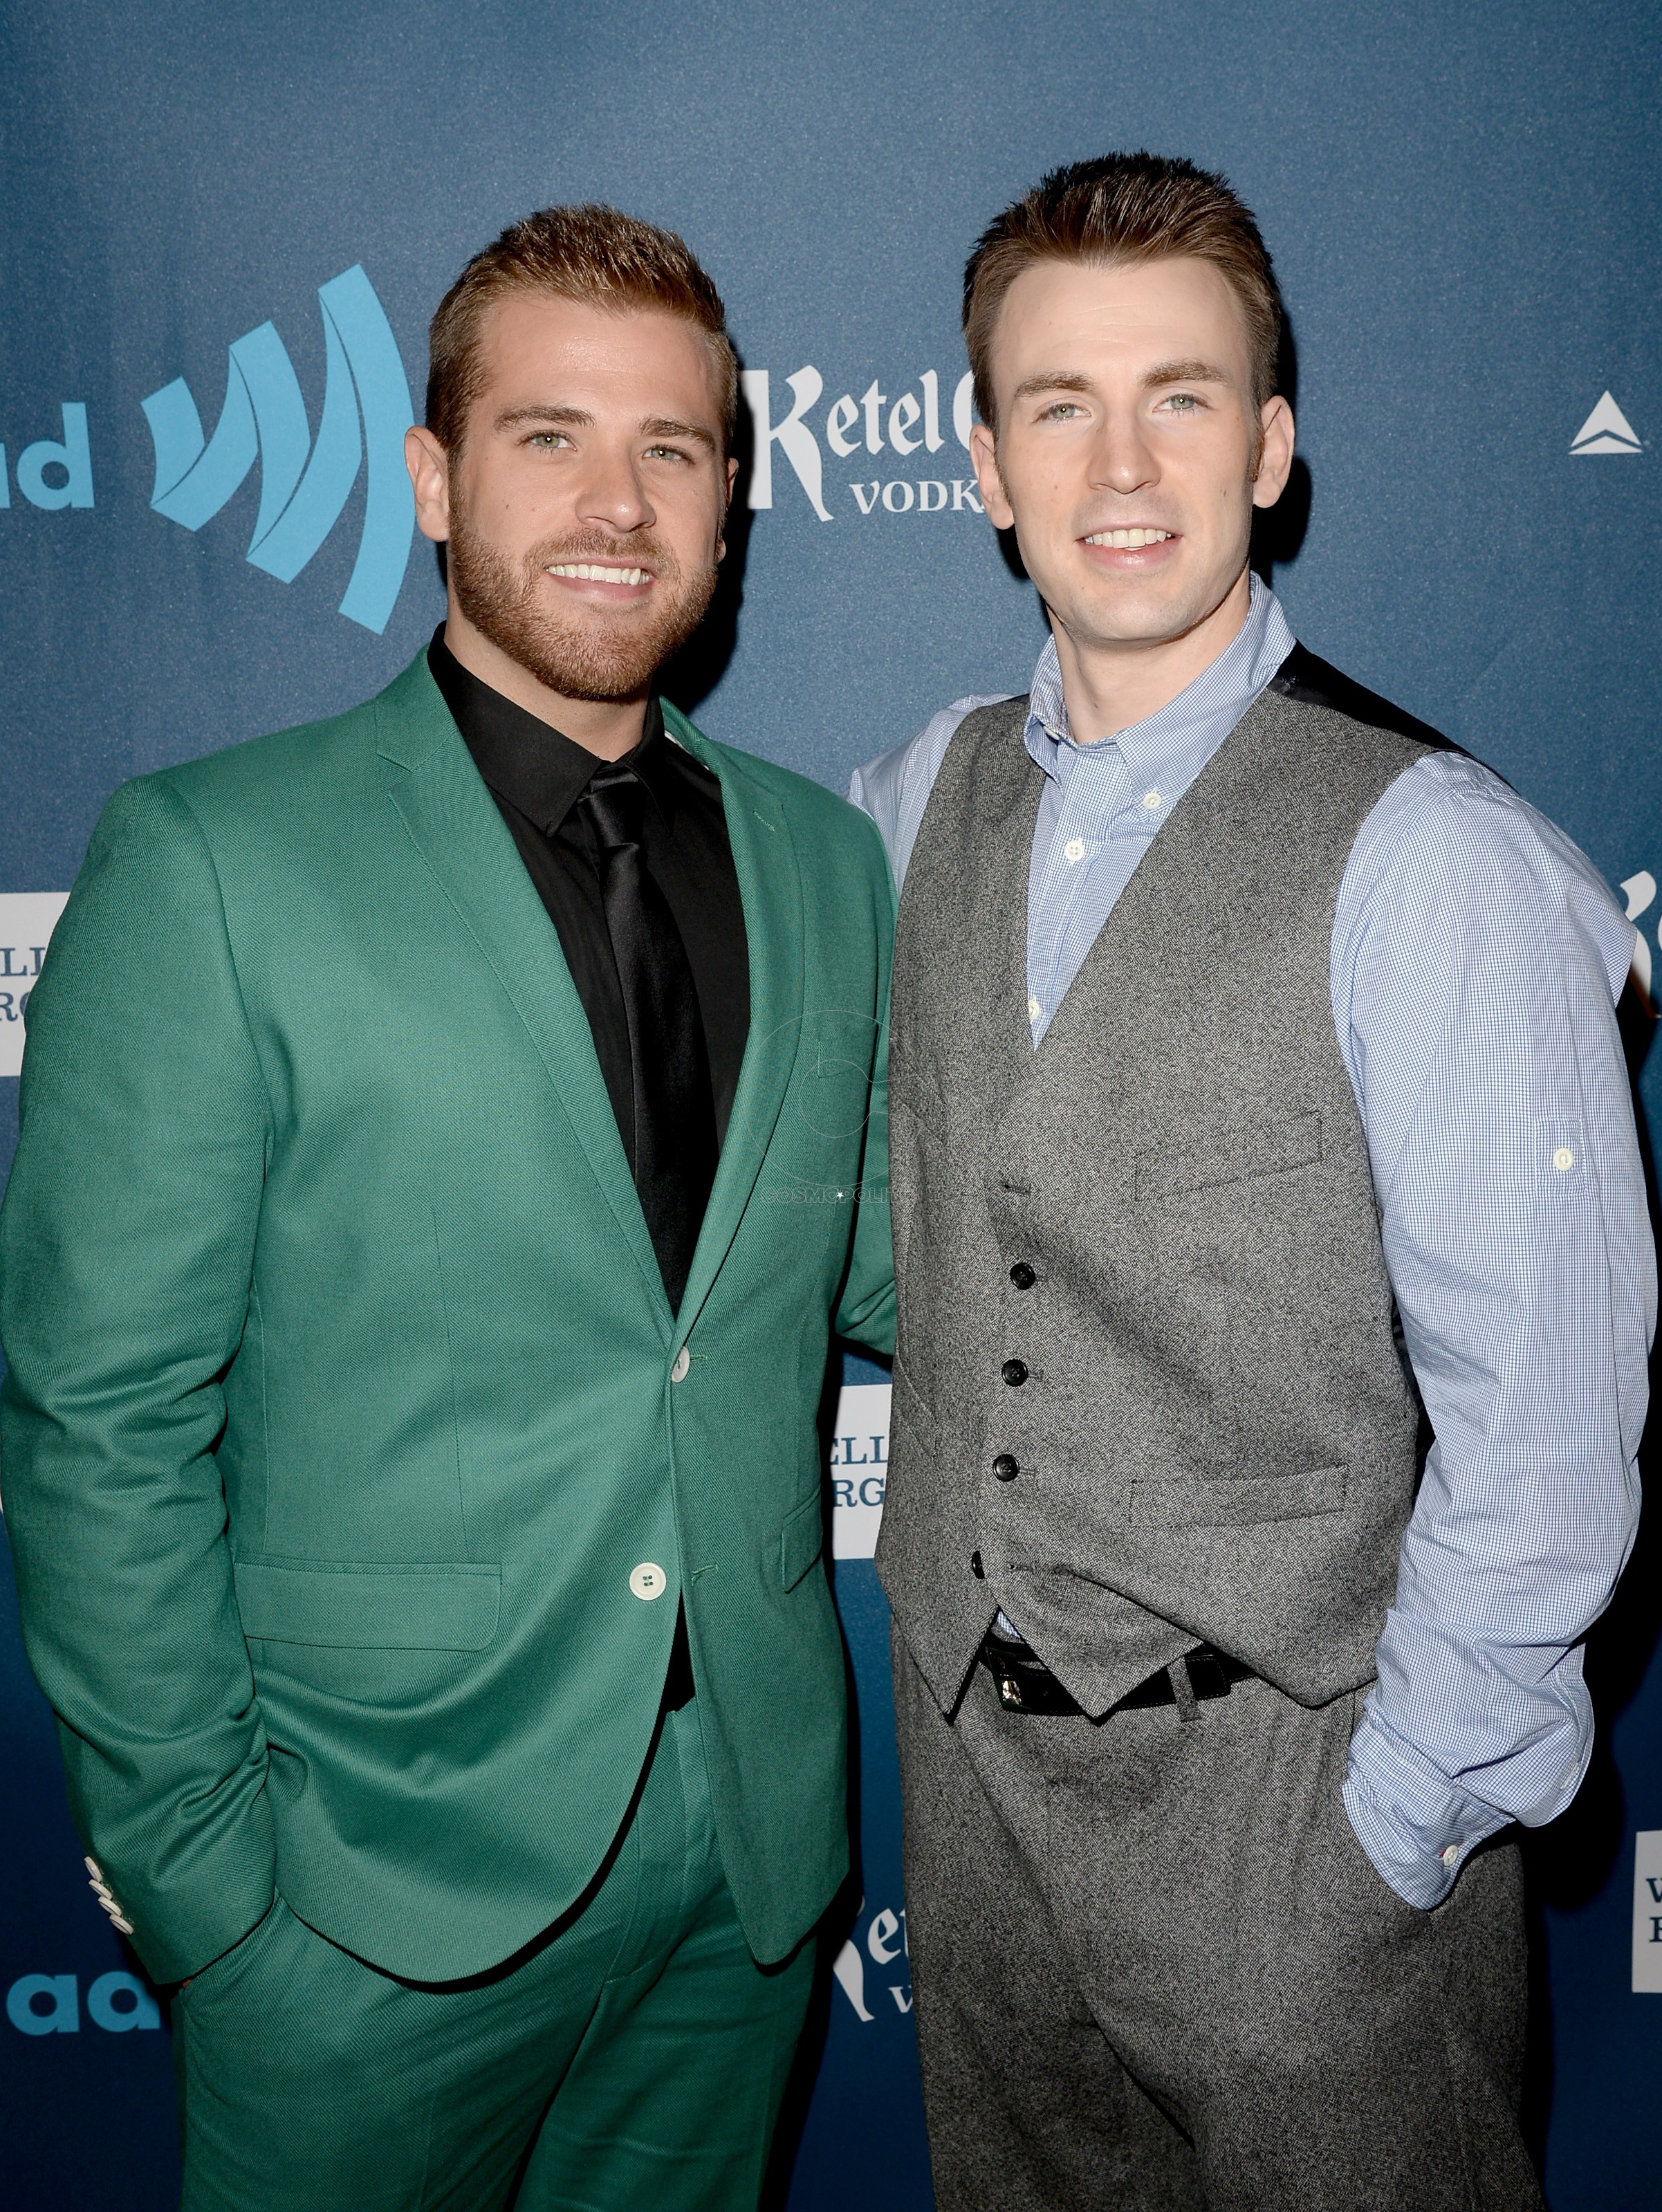 LOS ANGELES, CA - APRIL 20: Actors Scott Evans (L) and Chris Evans arrive at the 24th Annual GLAAD Media Awards at JW Marriott Los Angeles at L.A. LIVE on April 20, 2013 in Los Angeles, California. (Photo by Jason Merritt/Getty Images for GLAAD)